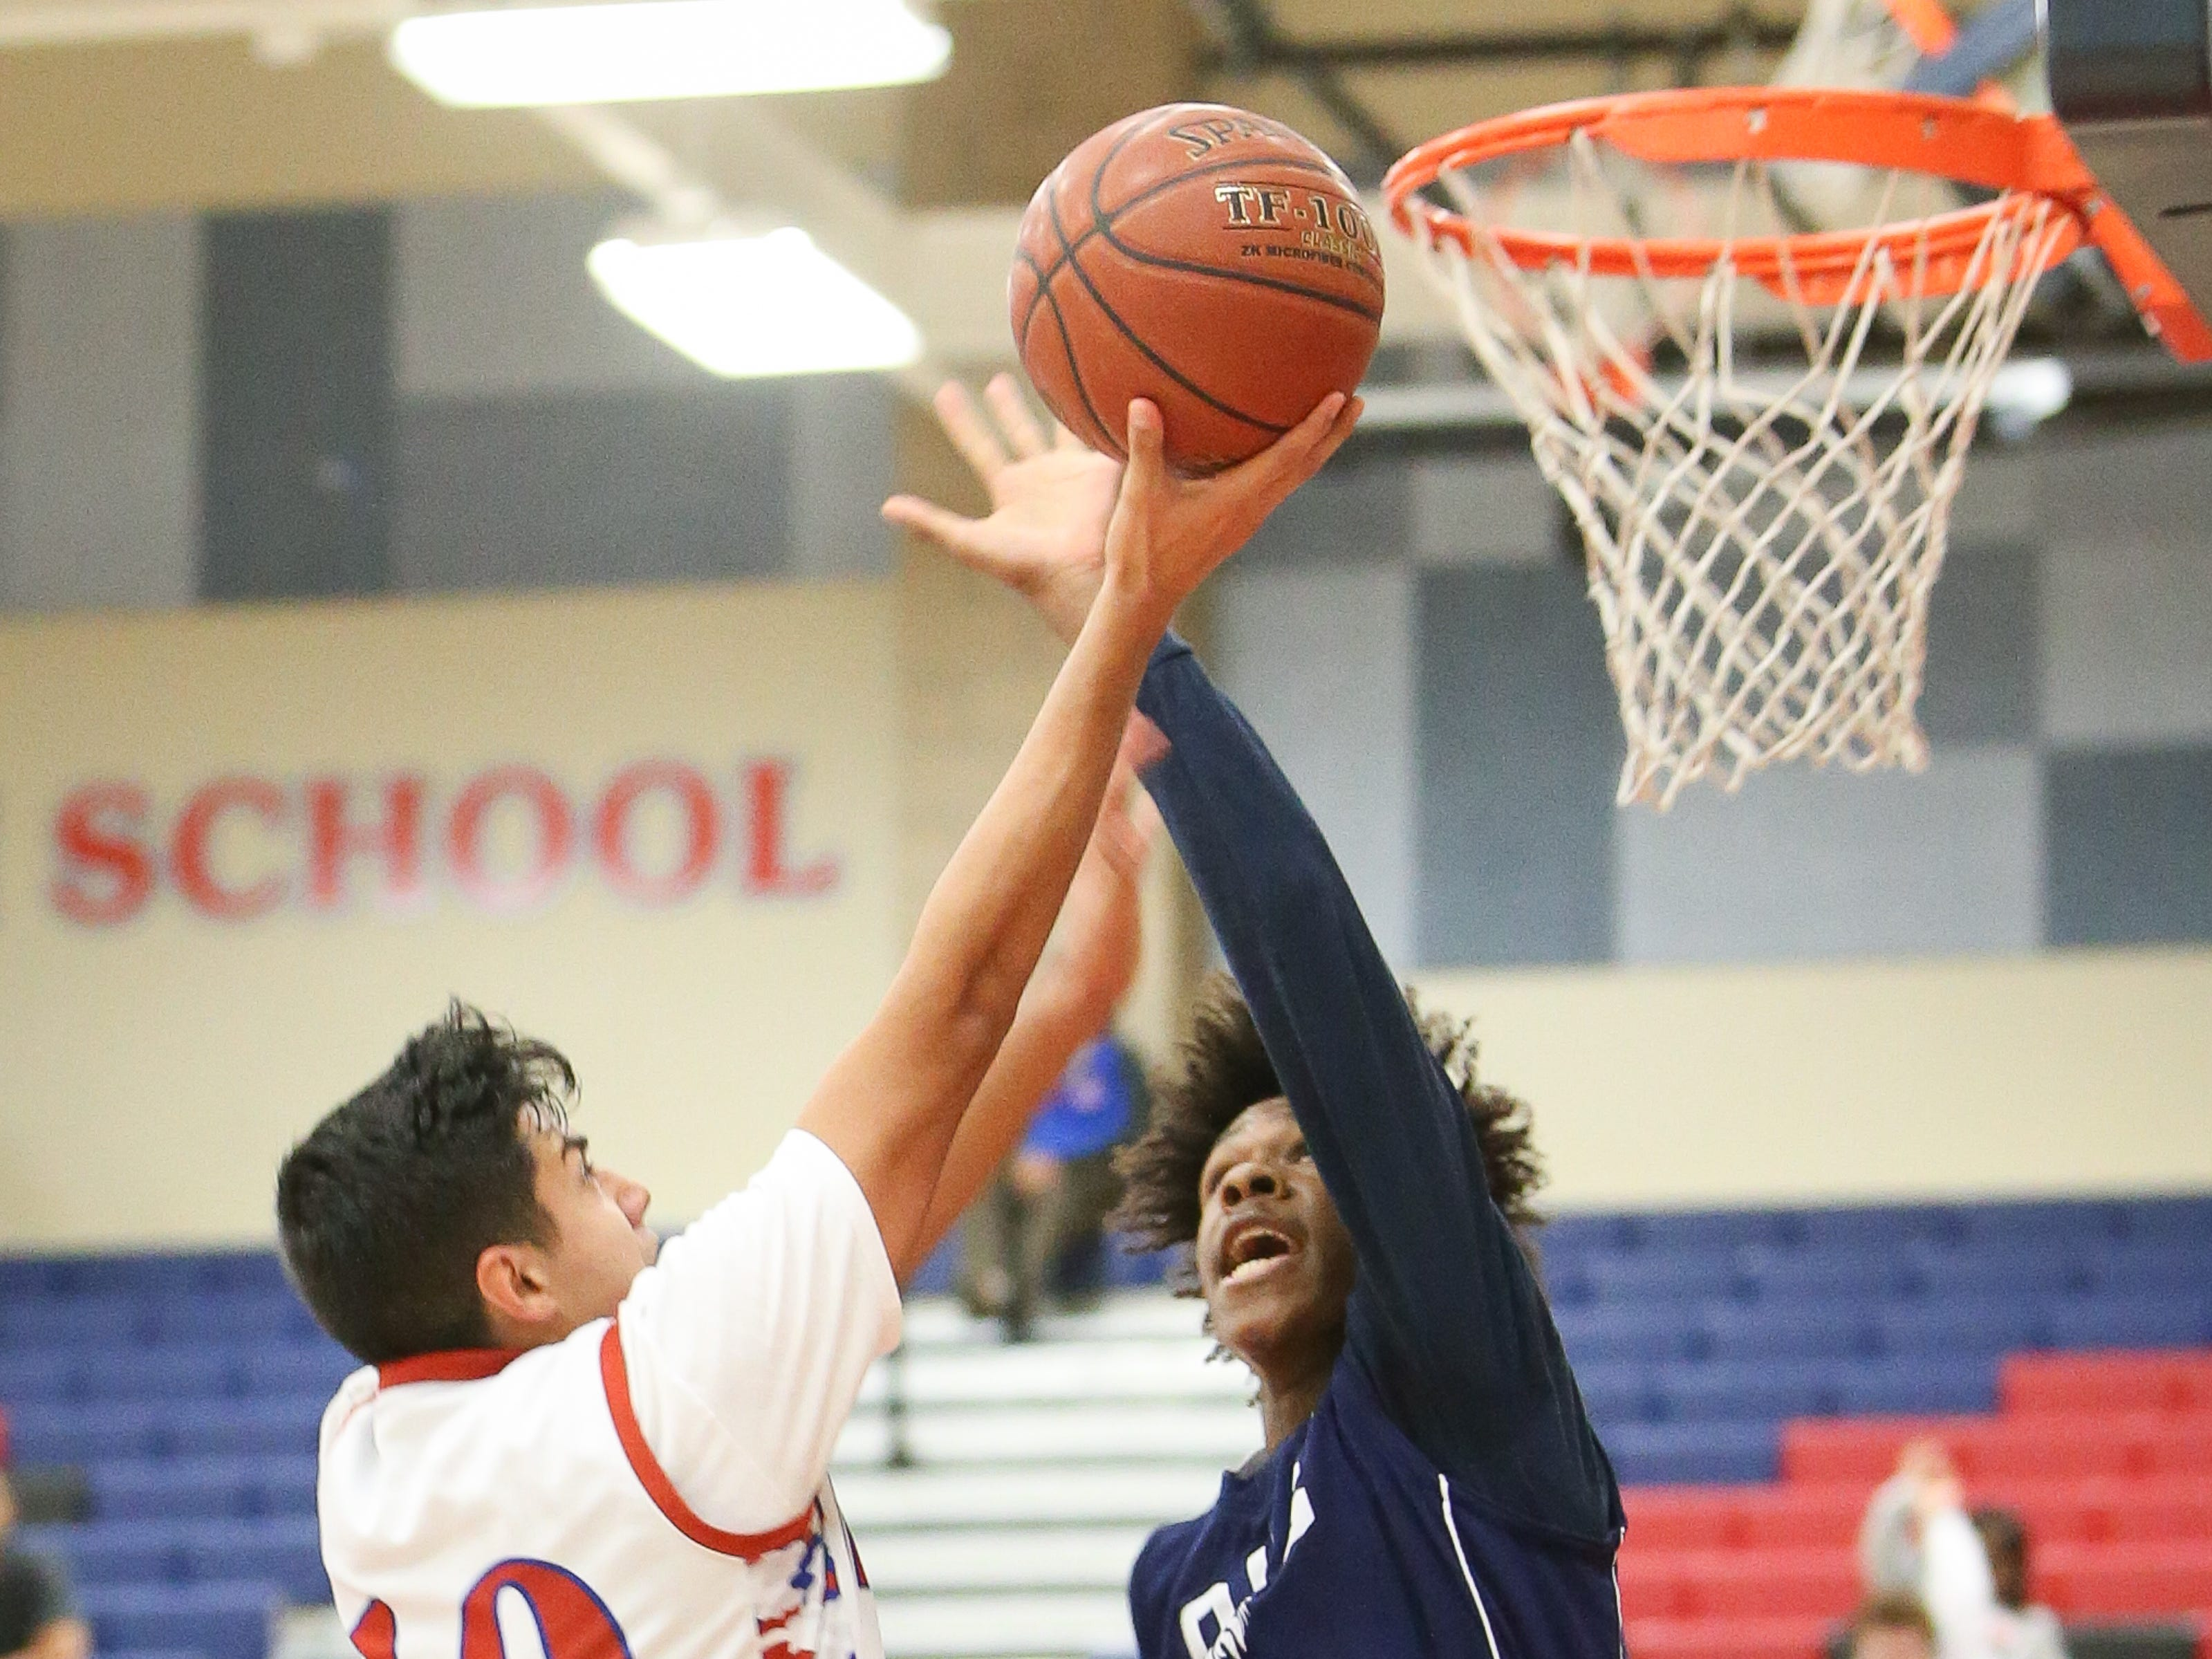 Jose Briceno attempts a layup but was blocked. The Indio varsity basketball team won Tuesday's home conference game against Desert Hot Springs (CA) by a score of 64-59.